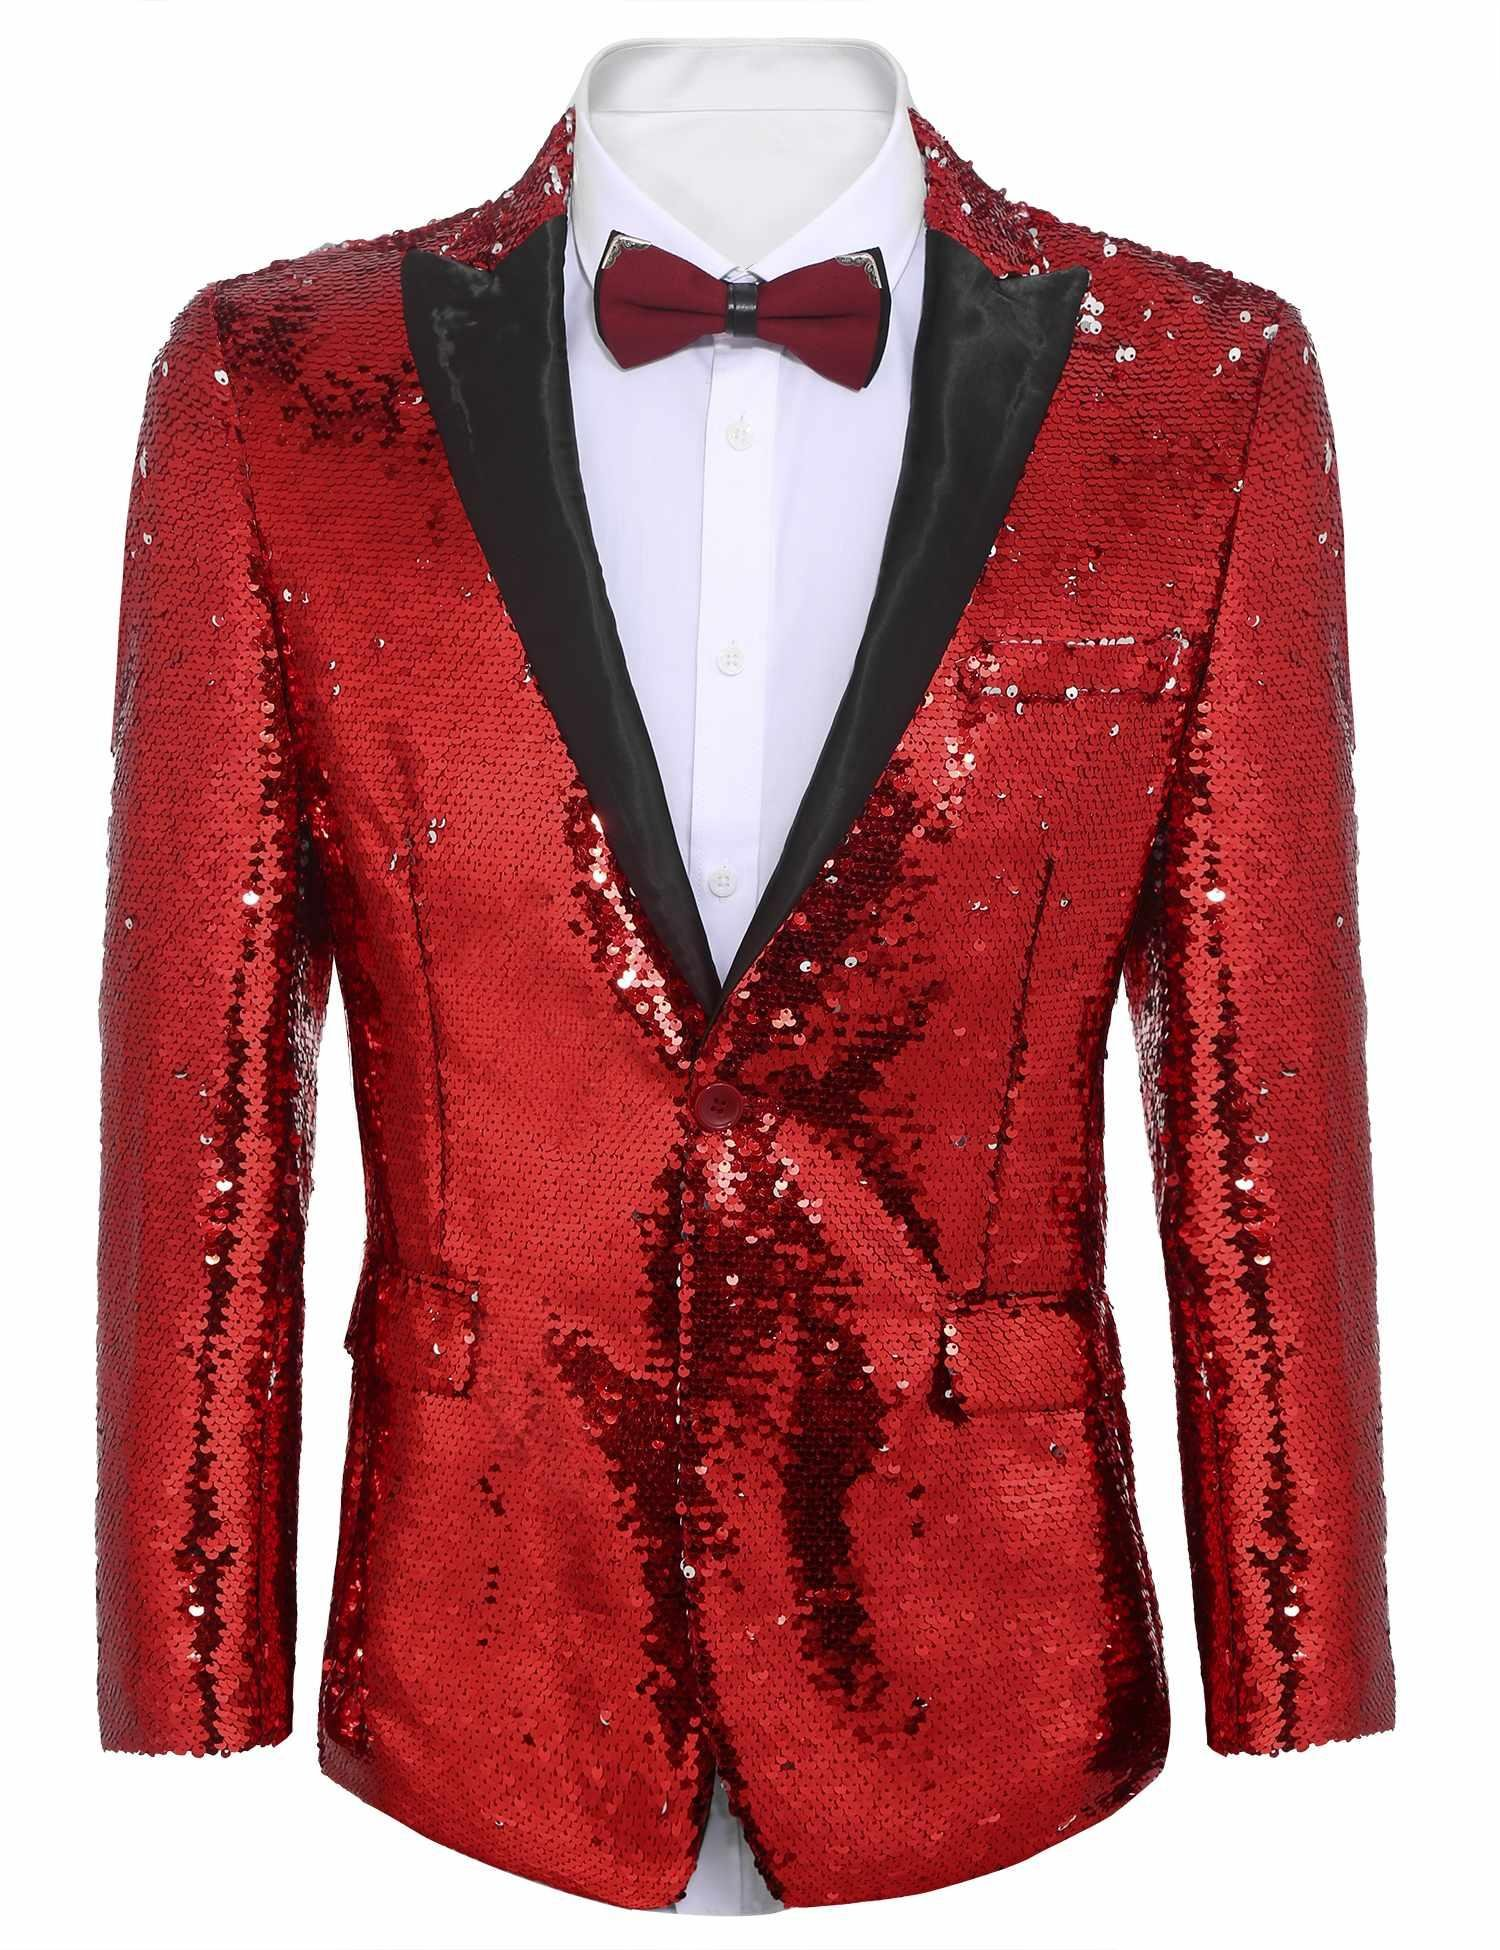 COOFANDY Shiny Sequins Suit Jacket Blazer One Button Tuxedo For Party,Wedding,Banquet,Christmas,Nightclub, Red, Large